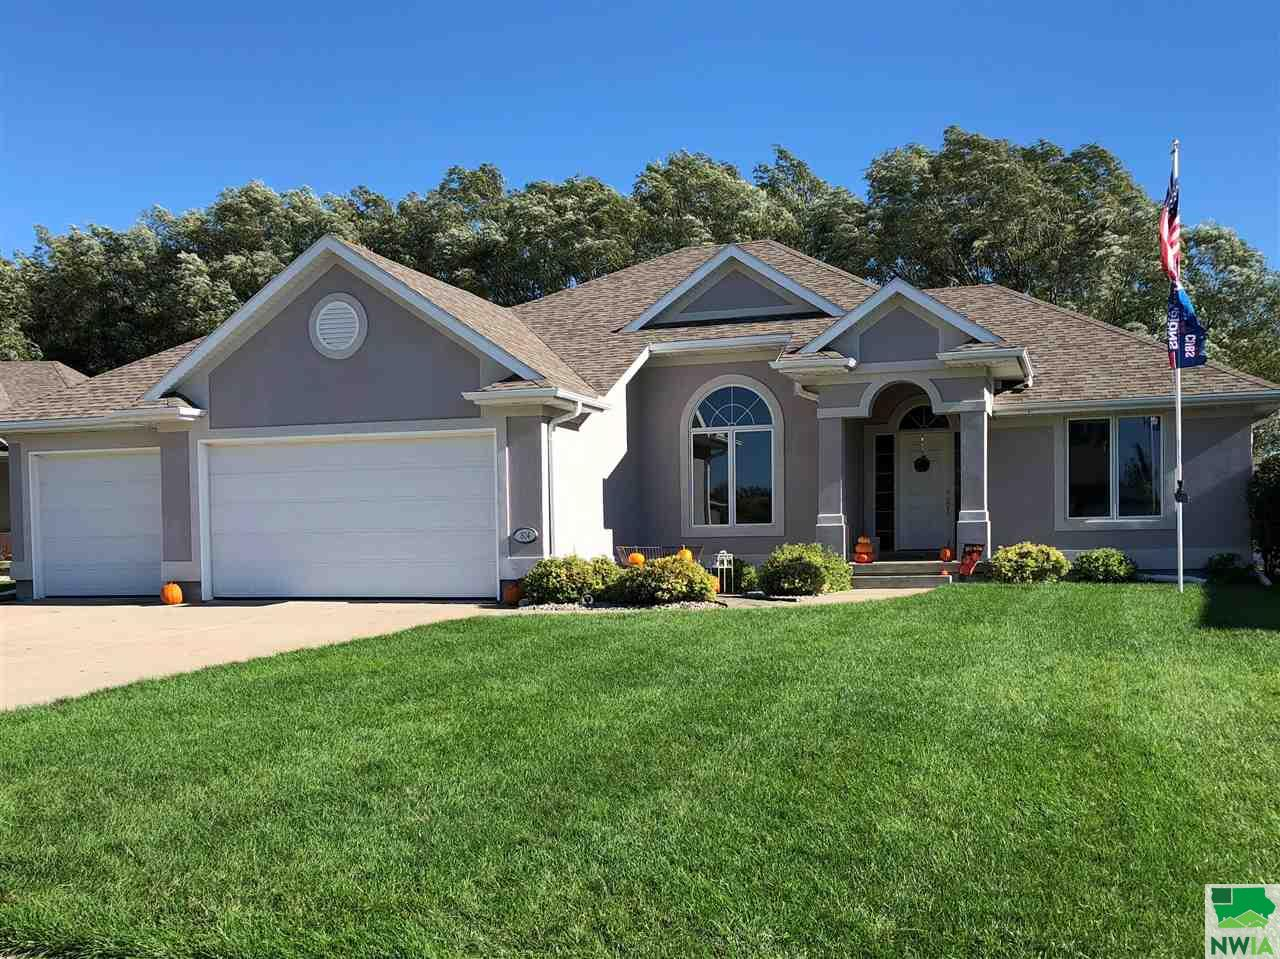 Property for sale at 804 Glenwood Ct, Sergeant Bluff,  IA 51054